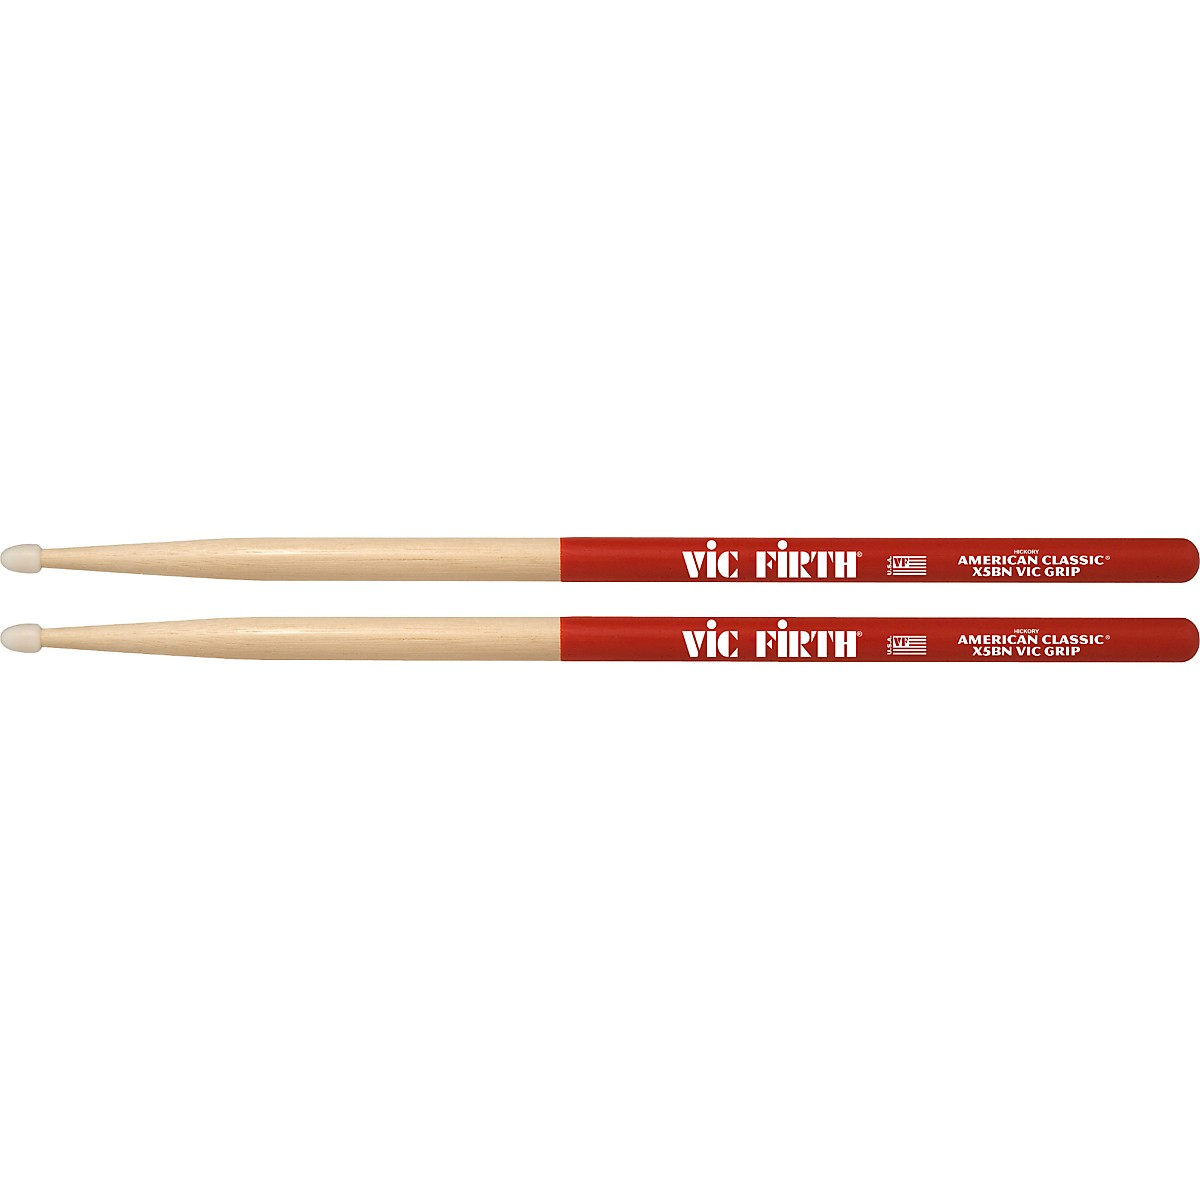 Vic Firth American Classic Extreme Drum Sticks With Vic Grip